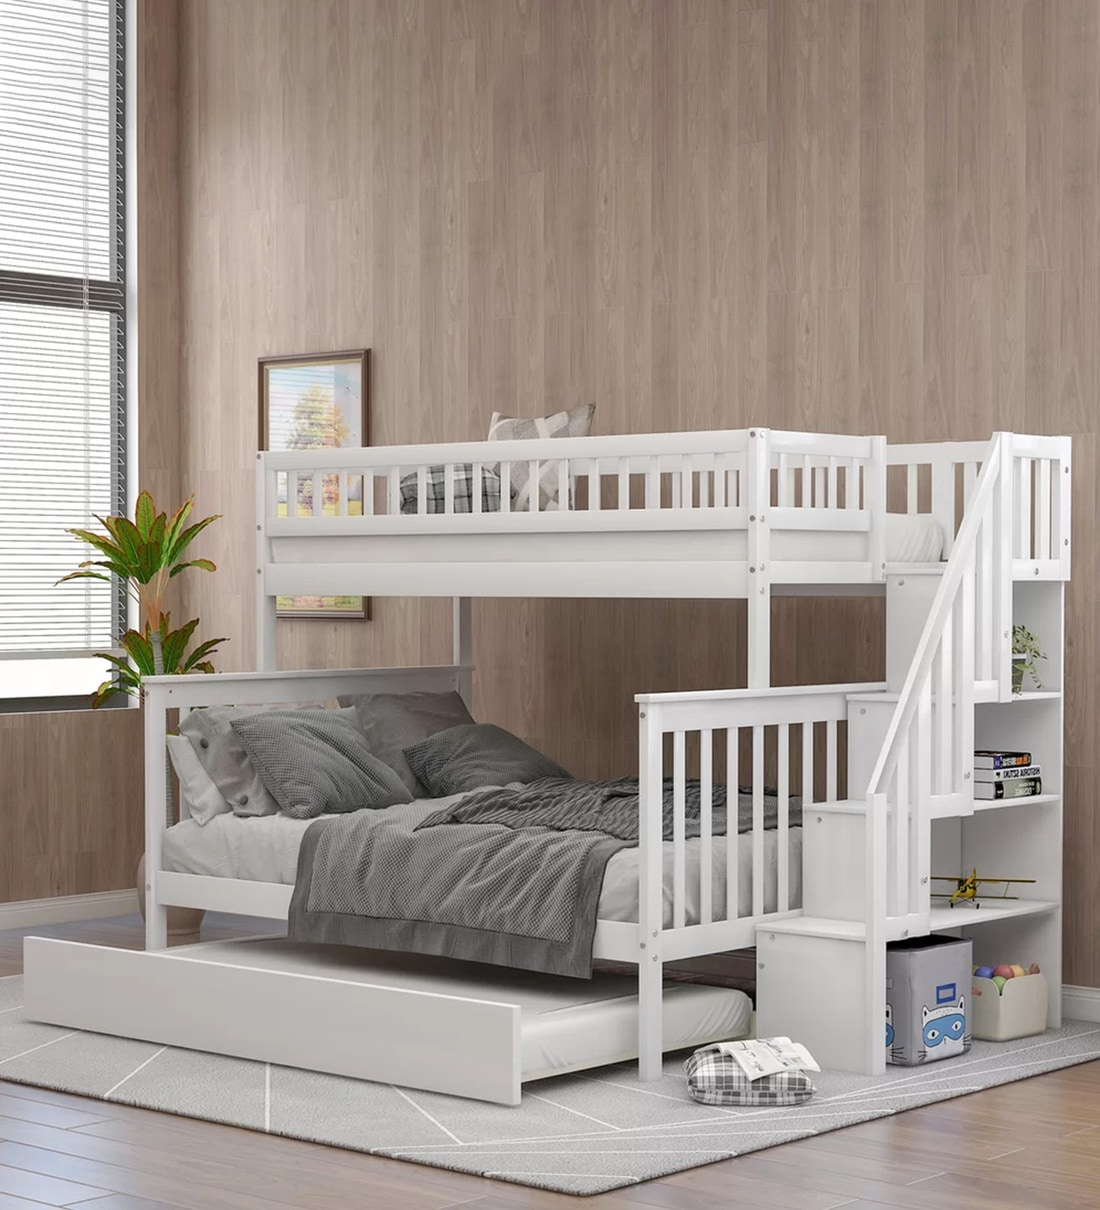 Buy Farmhouse Pine Wood Trundle Bunk Bed In White By Casacraft Online Trundle Bunk Beds Bunk Beds Kids Furniture Pepperfry Product